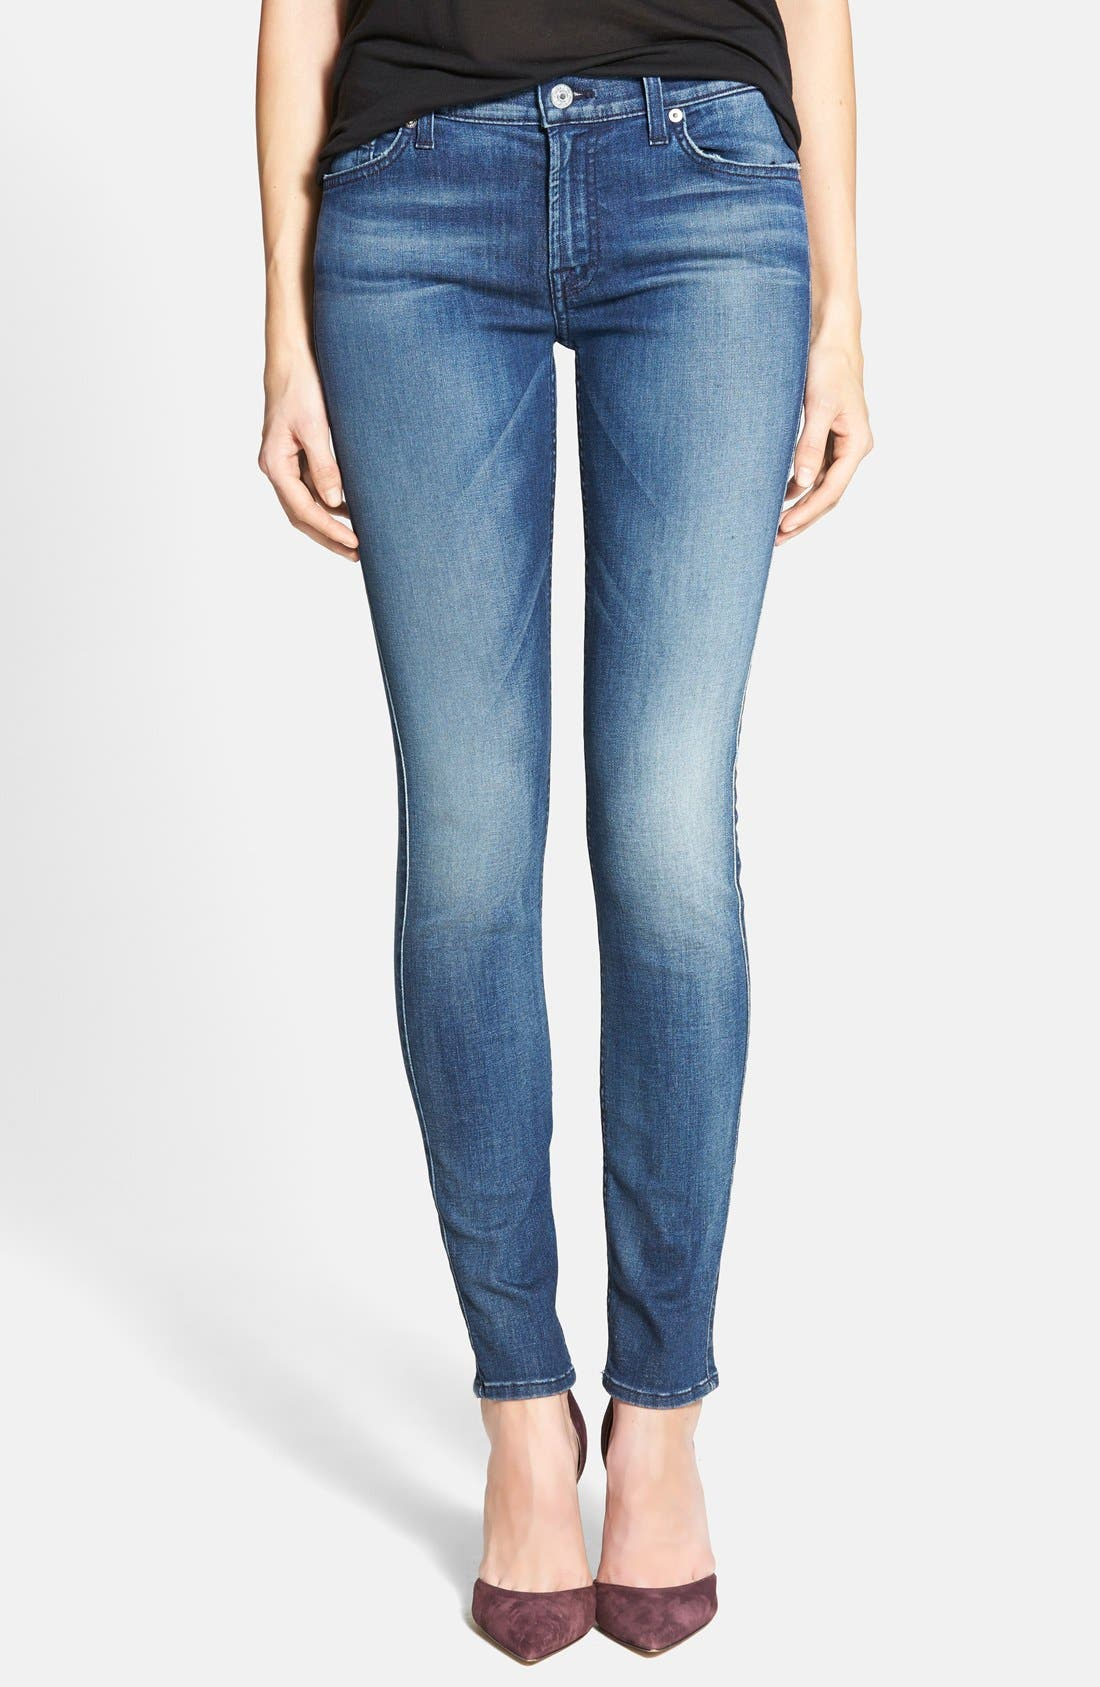 Main Image - 7 For All Mankind® 'The Skinny' Mid Rise Jeans (Summit Blue)